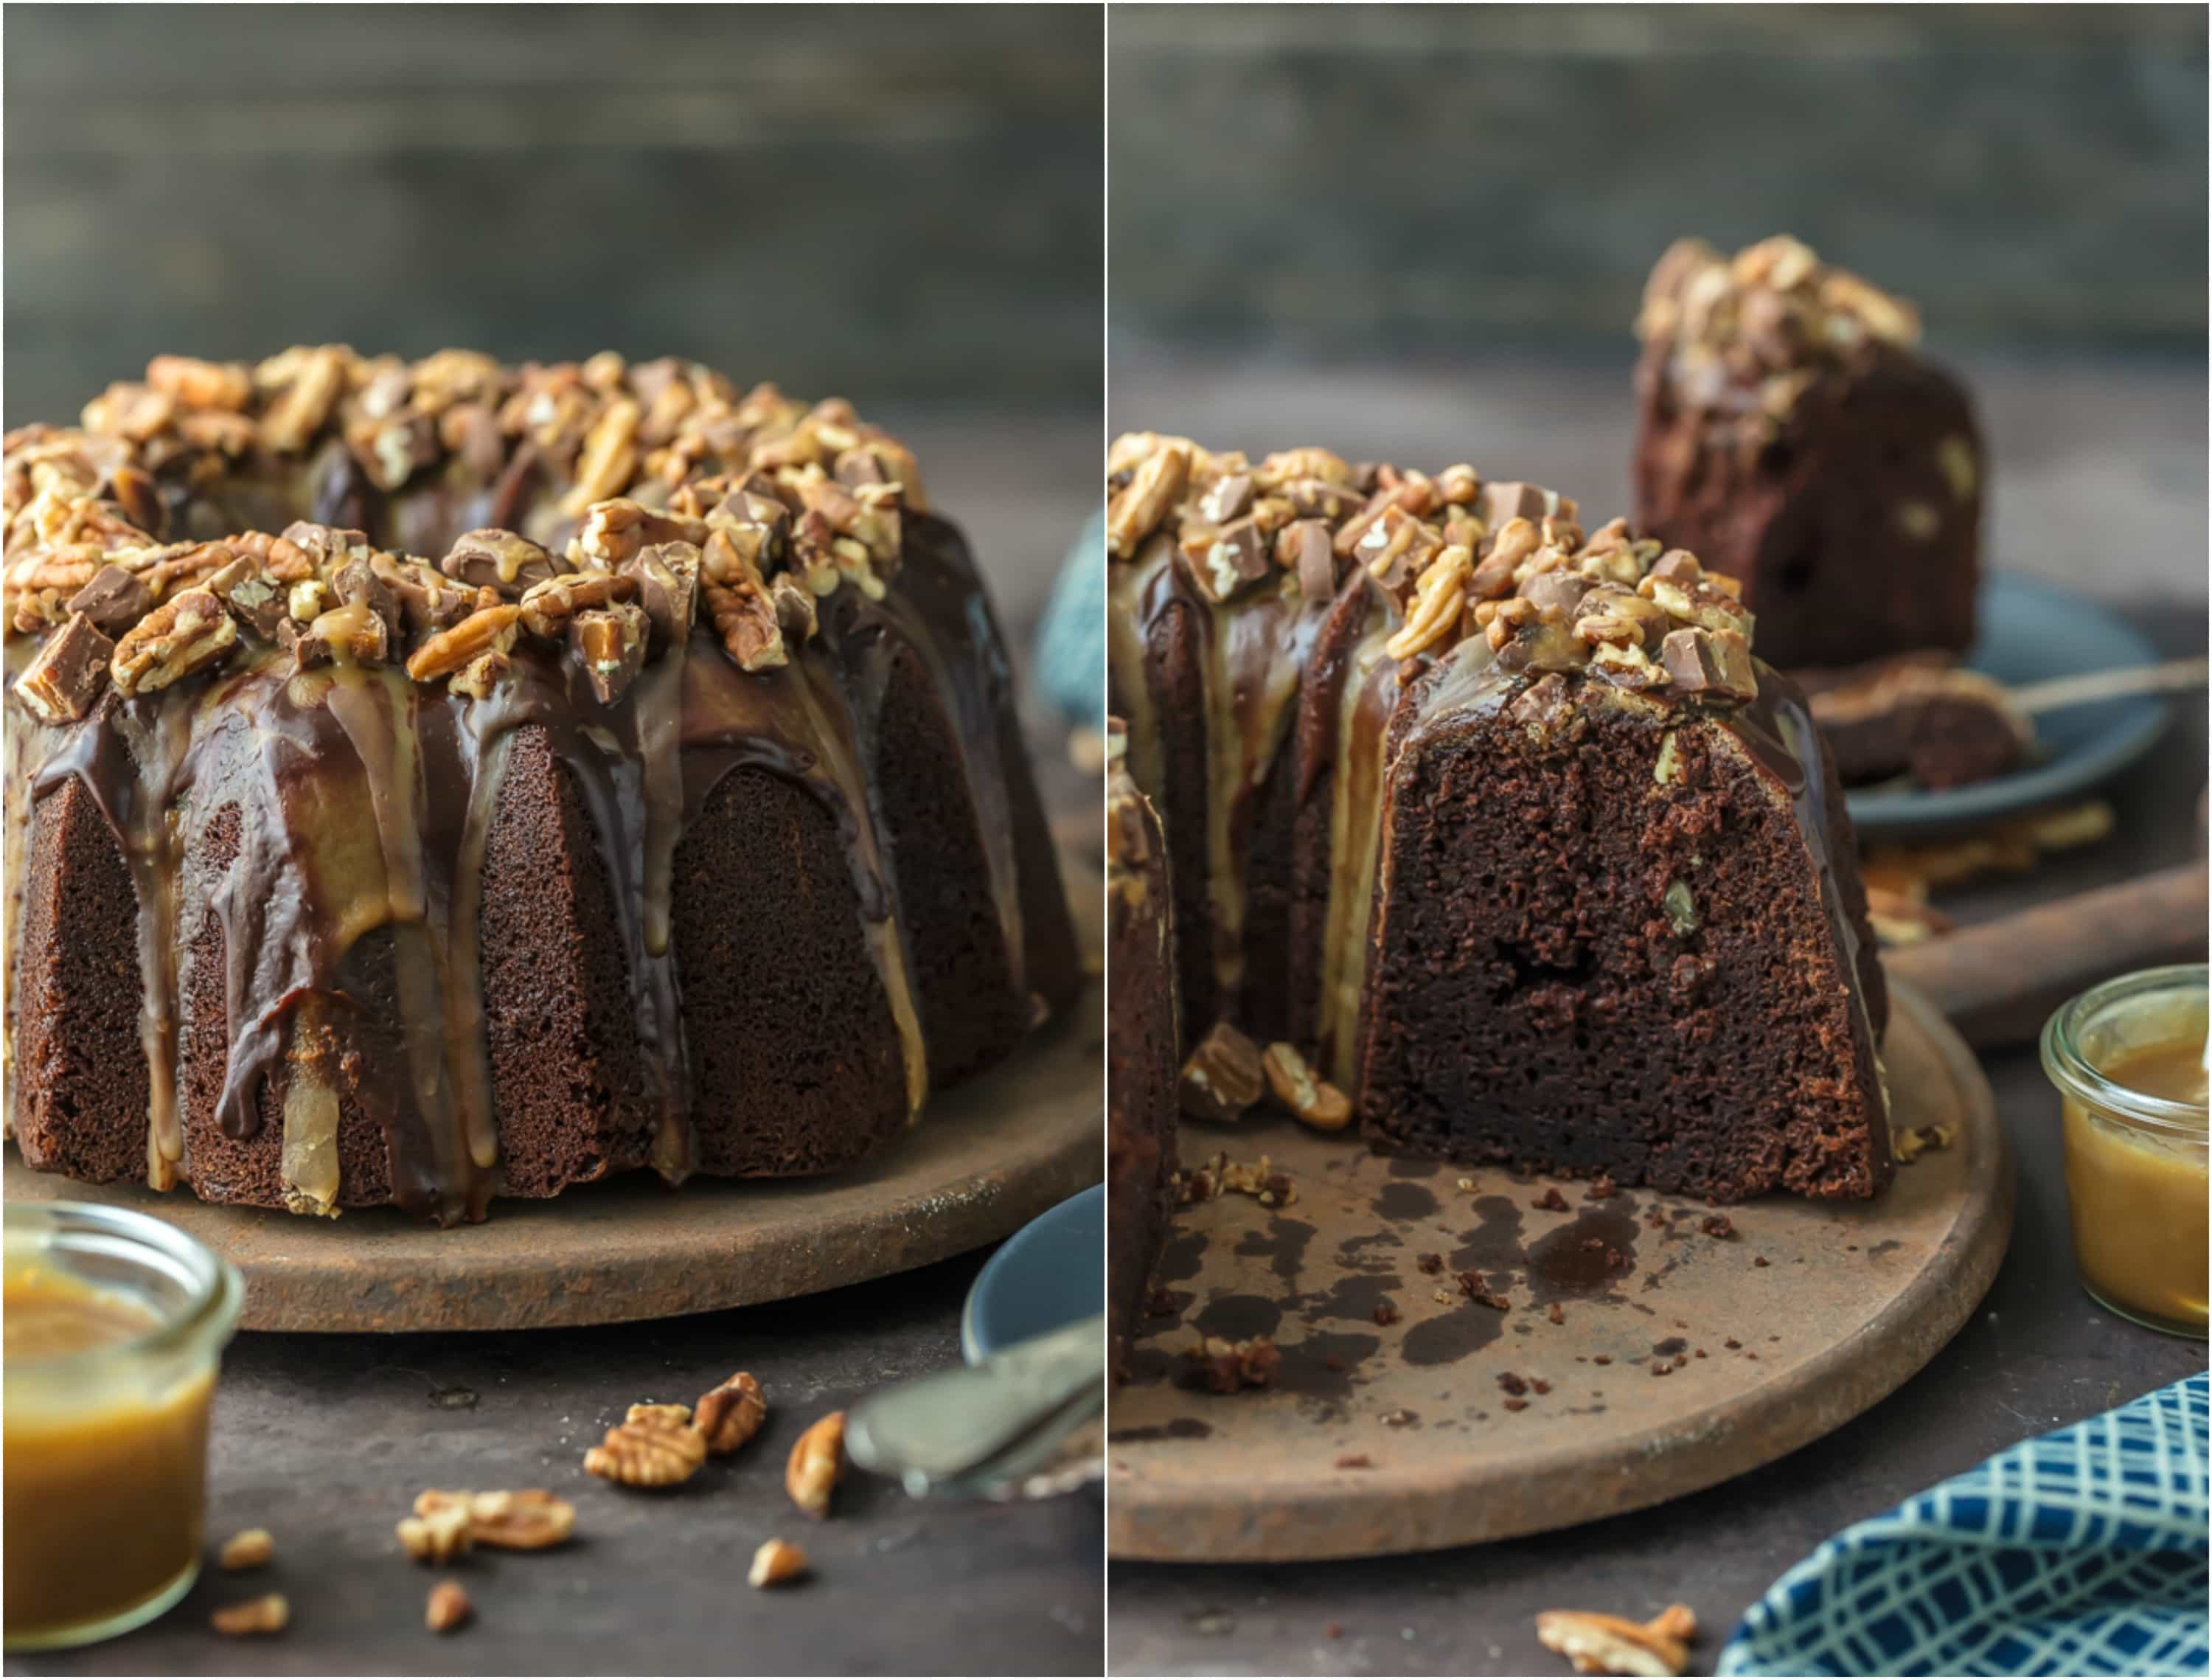 This TURTLE BROWNIE CAKE is a chocolate lovers dream. Dense and moist chocolate cake with walnuts and topped with the most incredible ganache and caramel drizzle. Crave worthy baking!